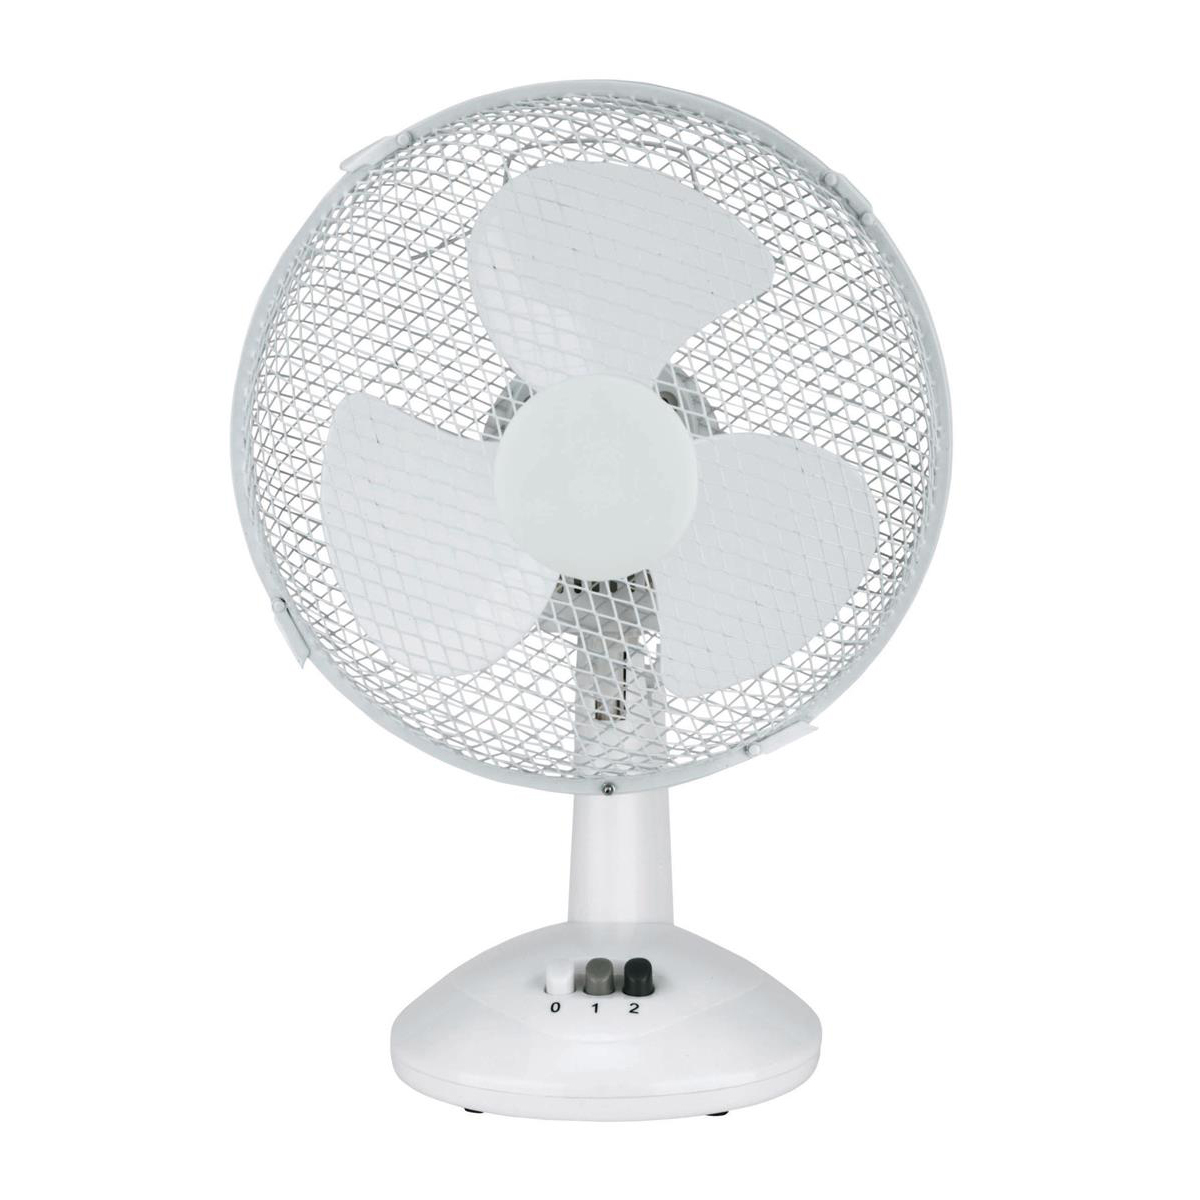 Desk Fans 5 Star Facilities Desk Fan 9 Inch 90deg Oscillating with Tilt & Lock 2-Speed H320mm w/Cable 1.25m White